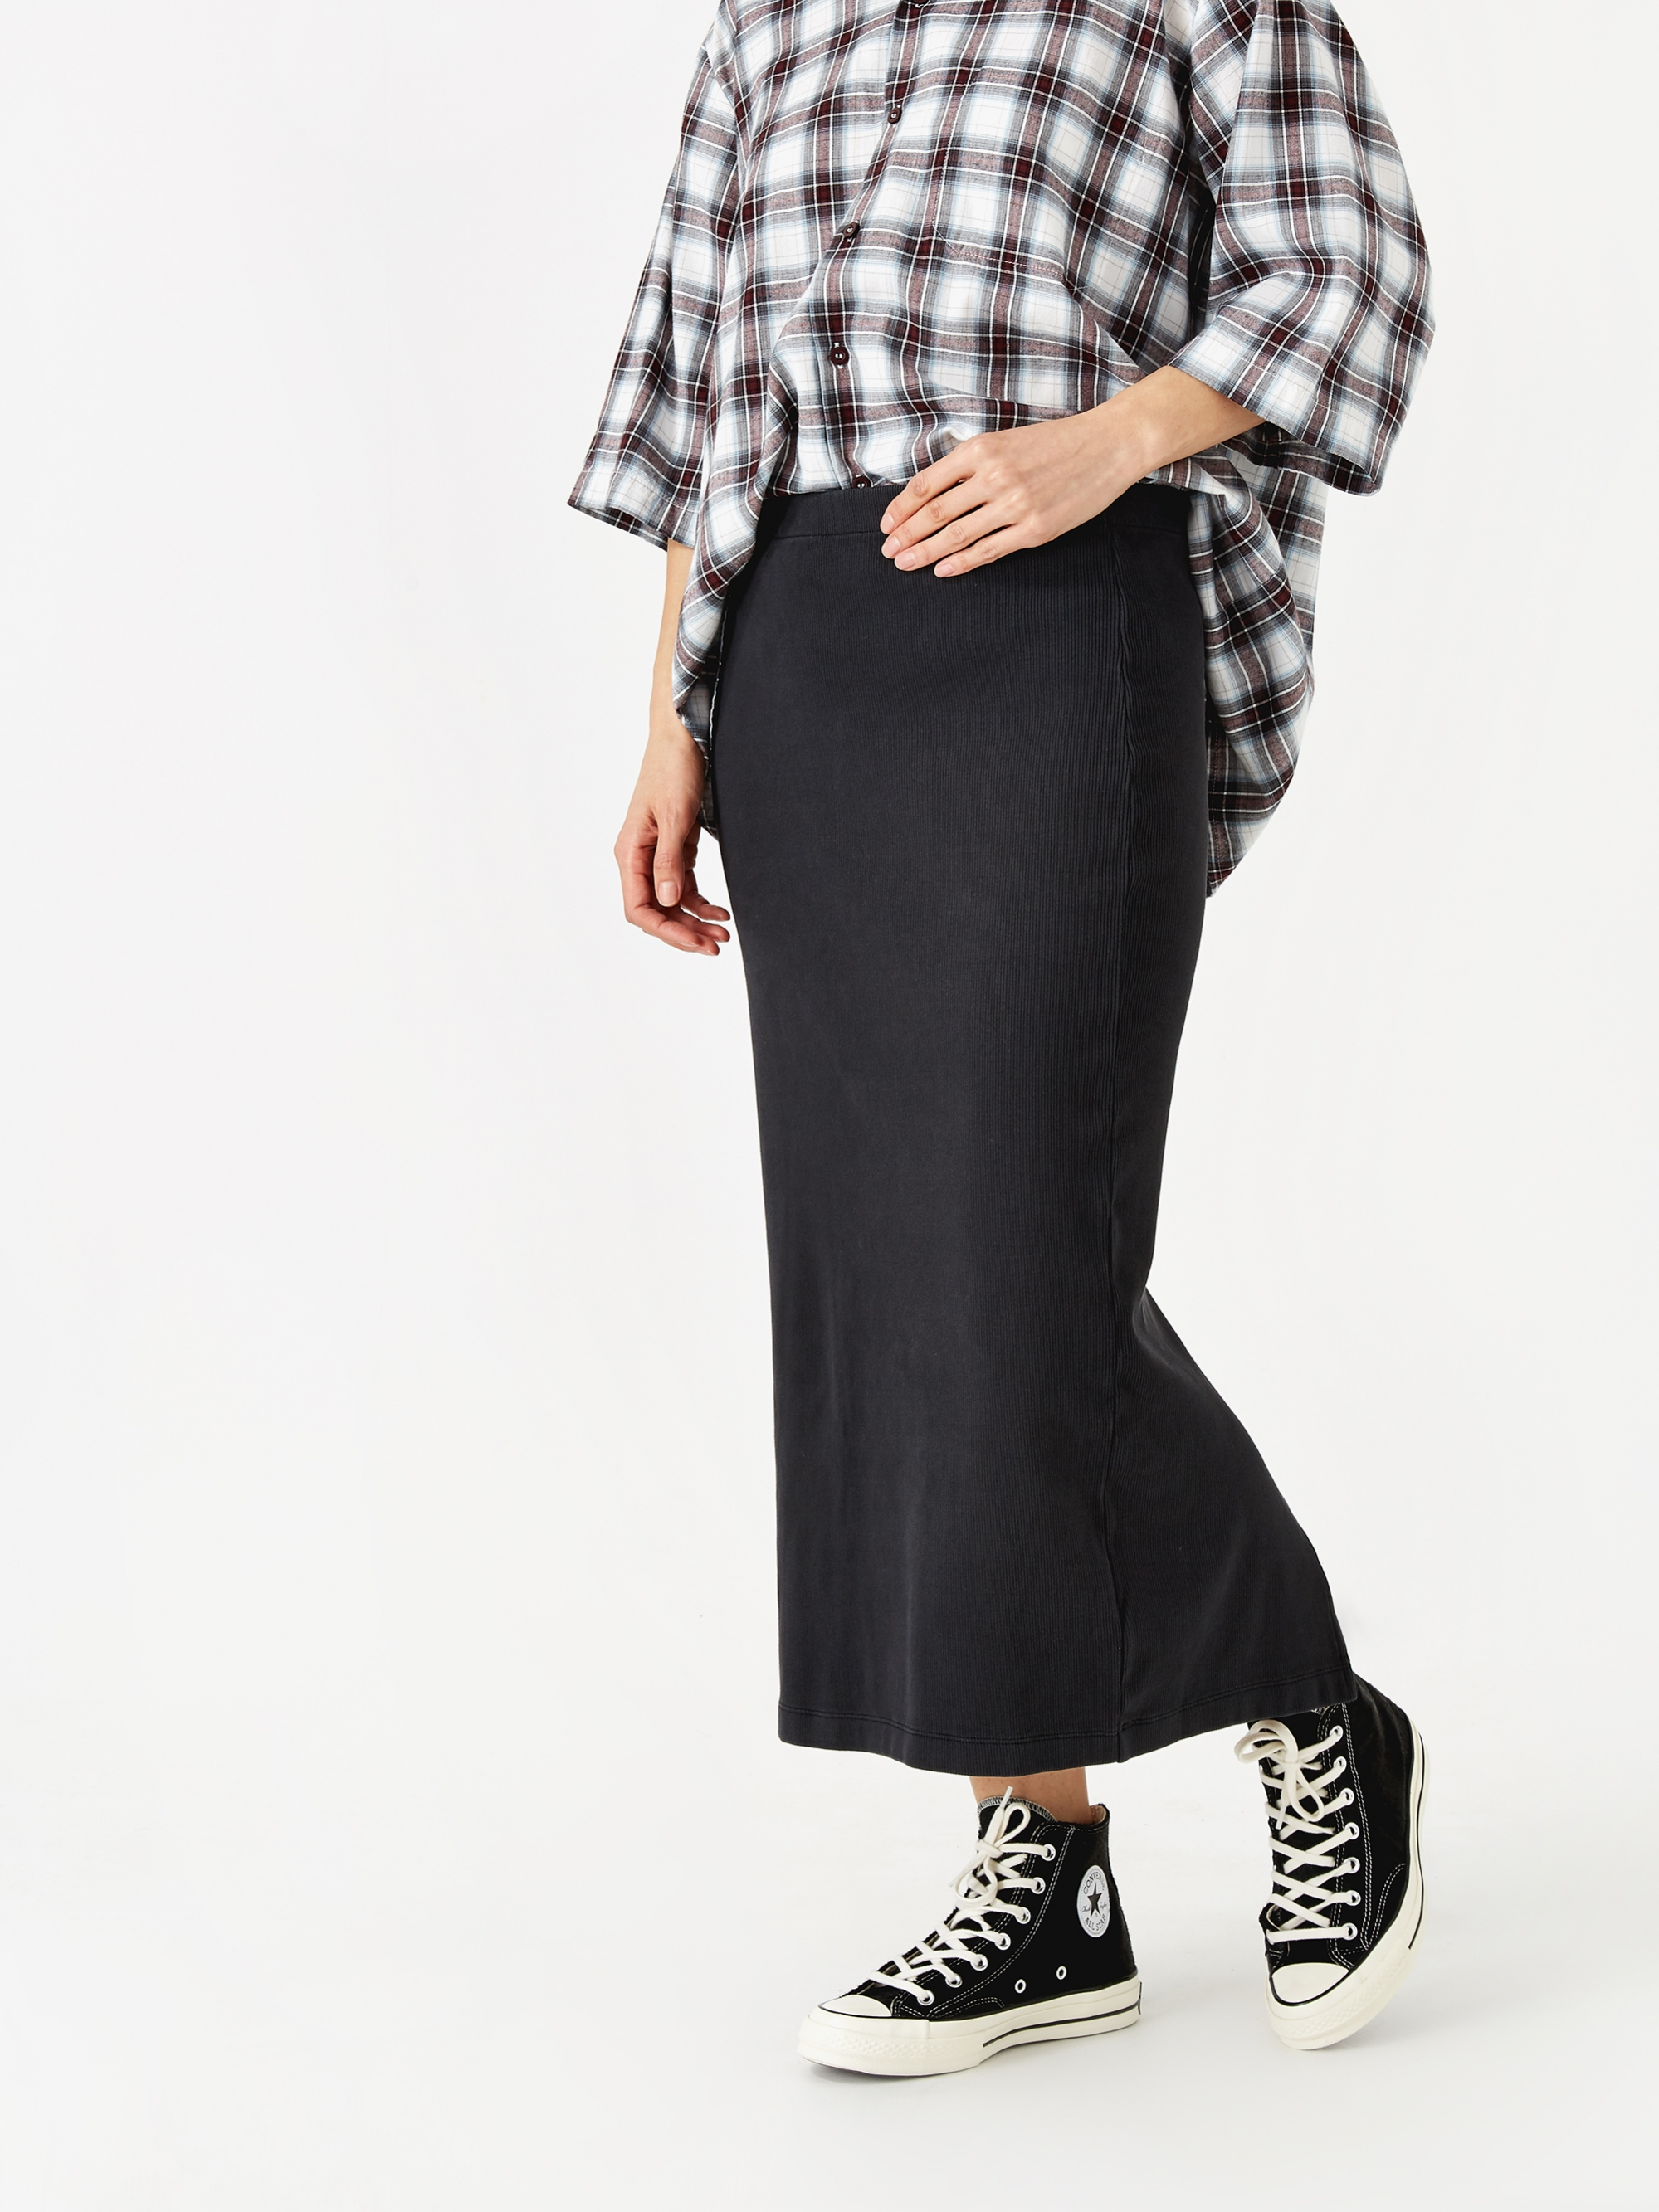 b3f1e4c609 Our Legacy Rib Tube Skirt - Anthracite